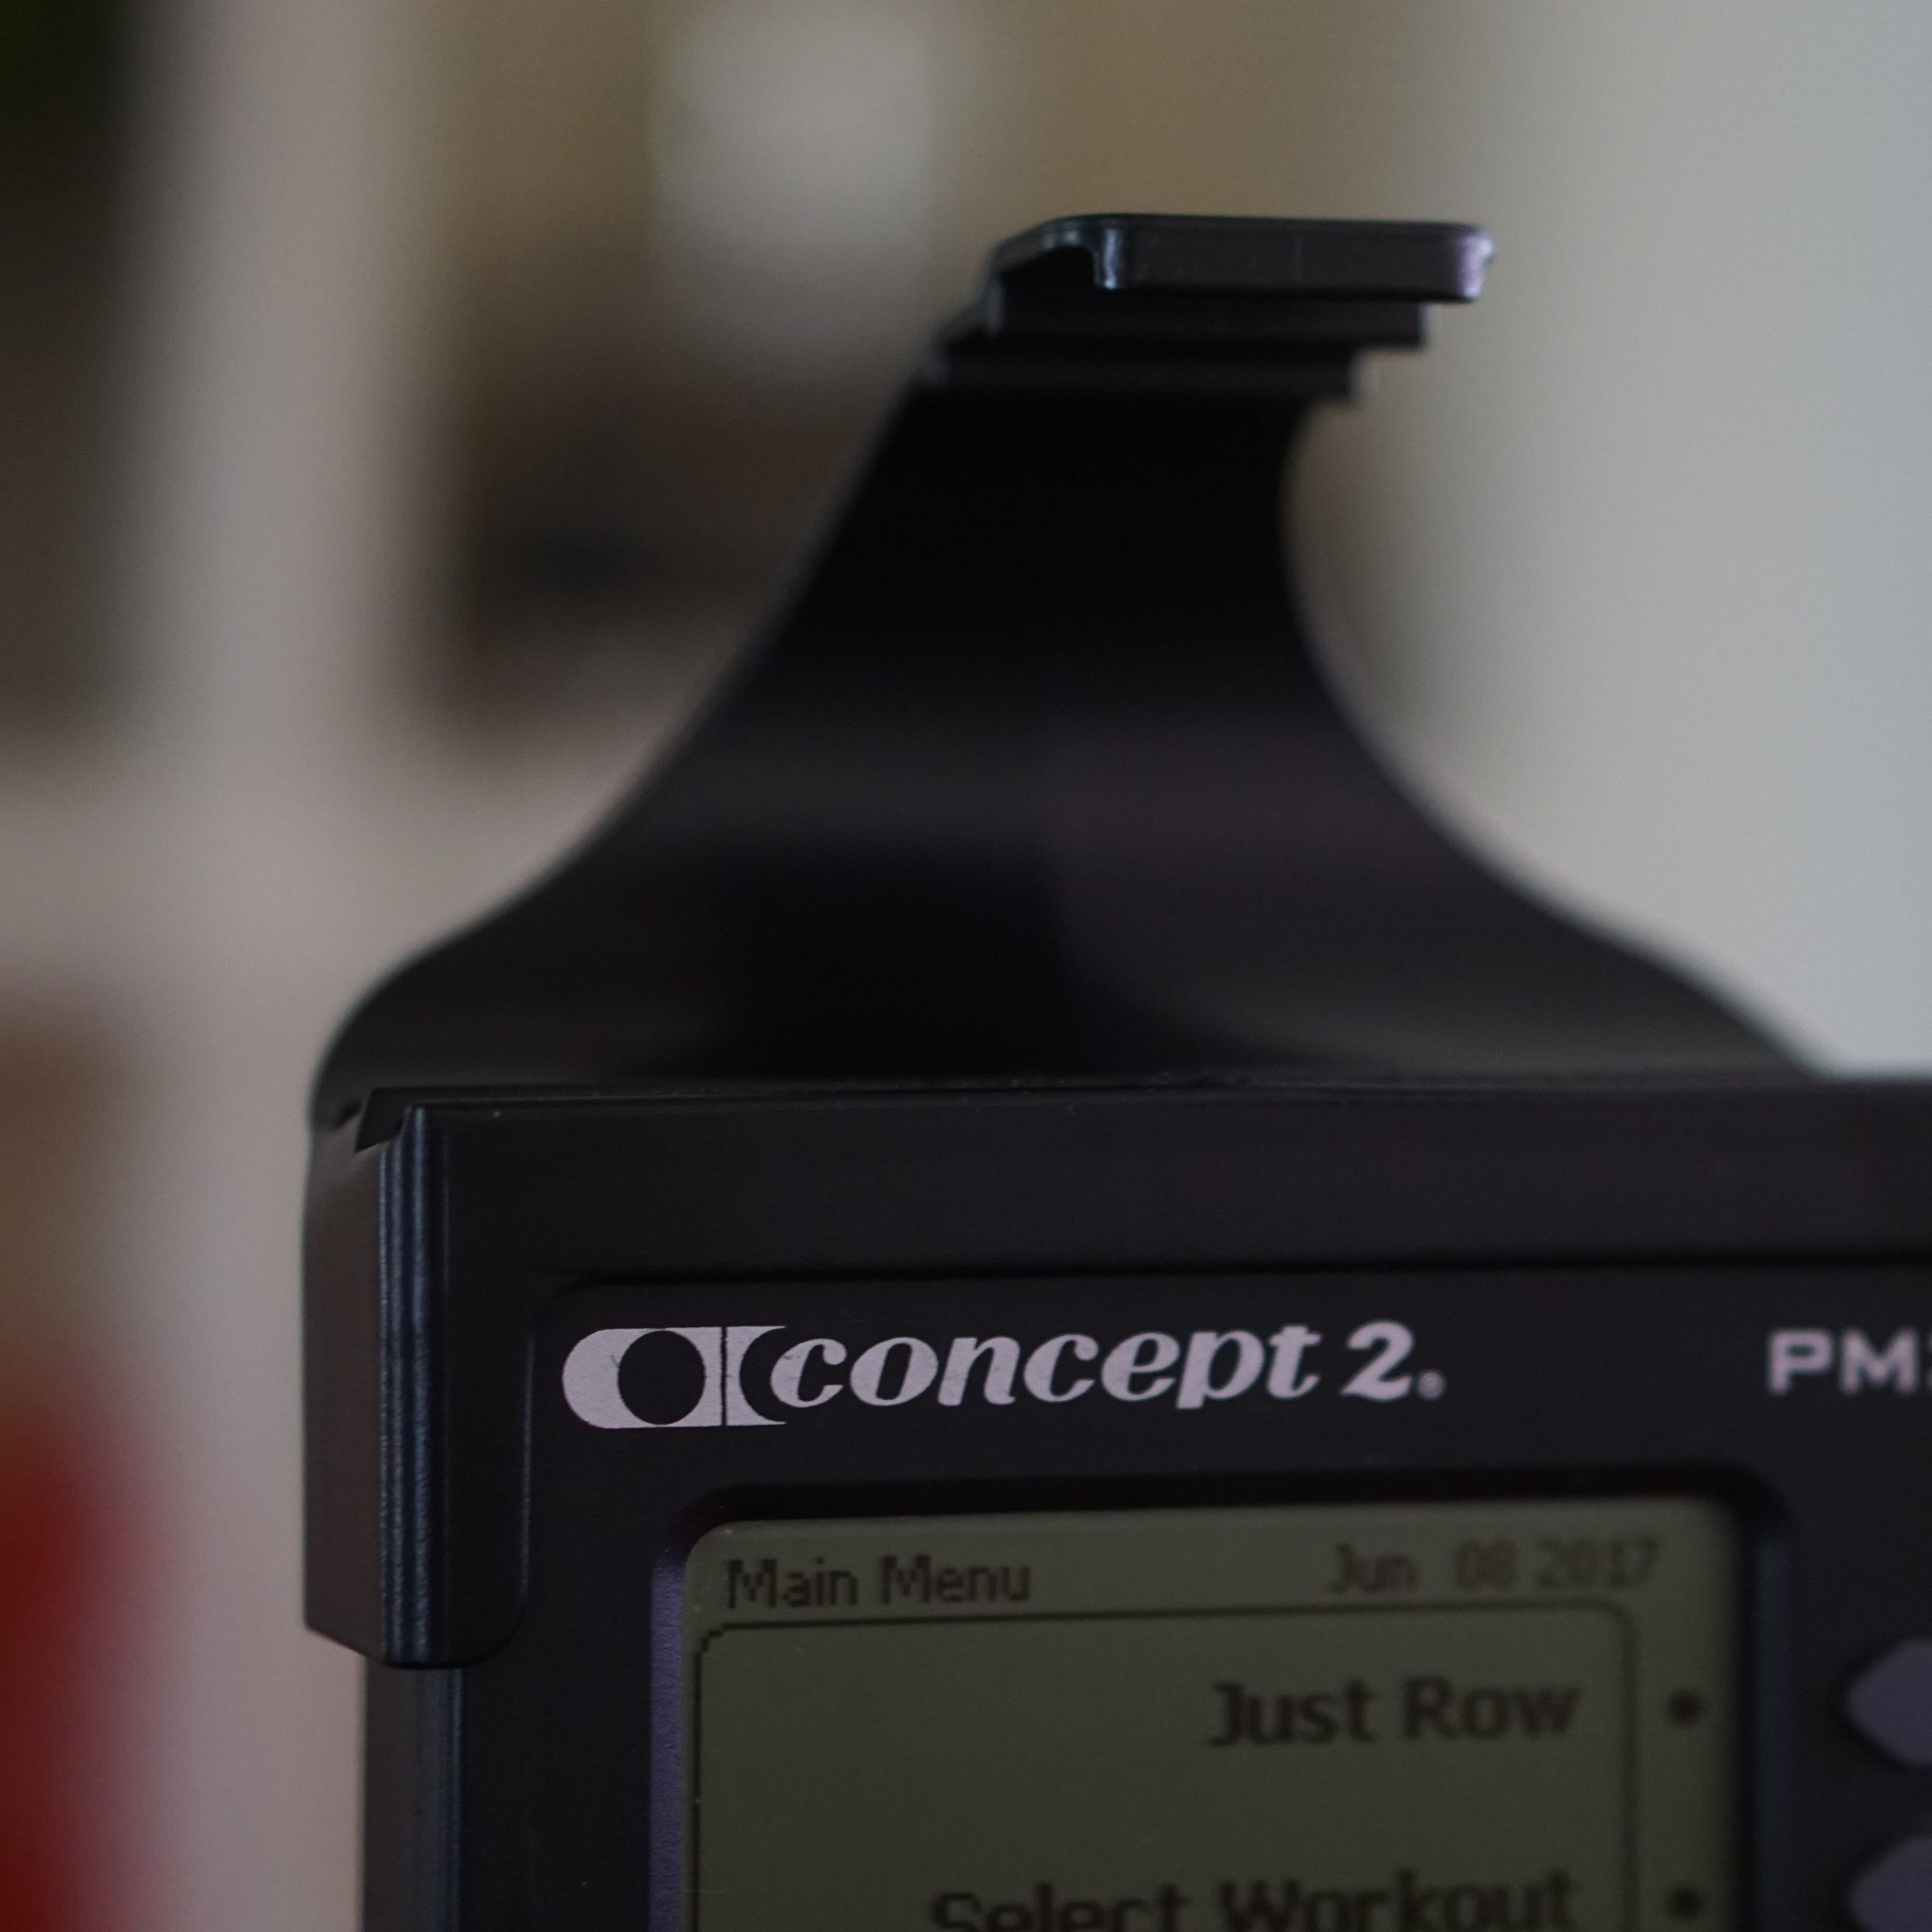 LiveRowing Concept 2 Rowing Machine Smartphone Holder – FREE Fitness App - Fits Most iPhones and iPods - Holds Your Smartphone While Working Out on Your Erg Machine